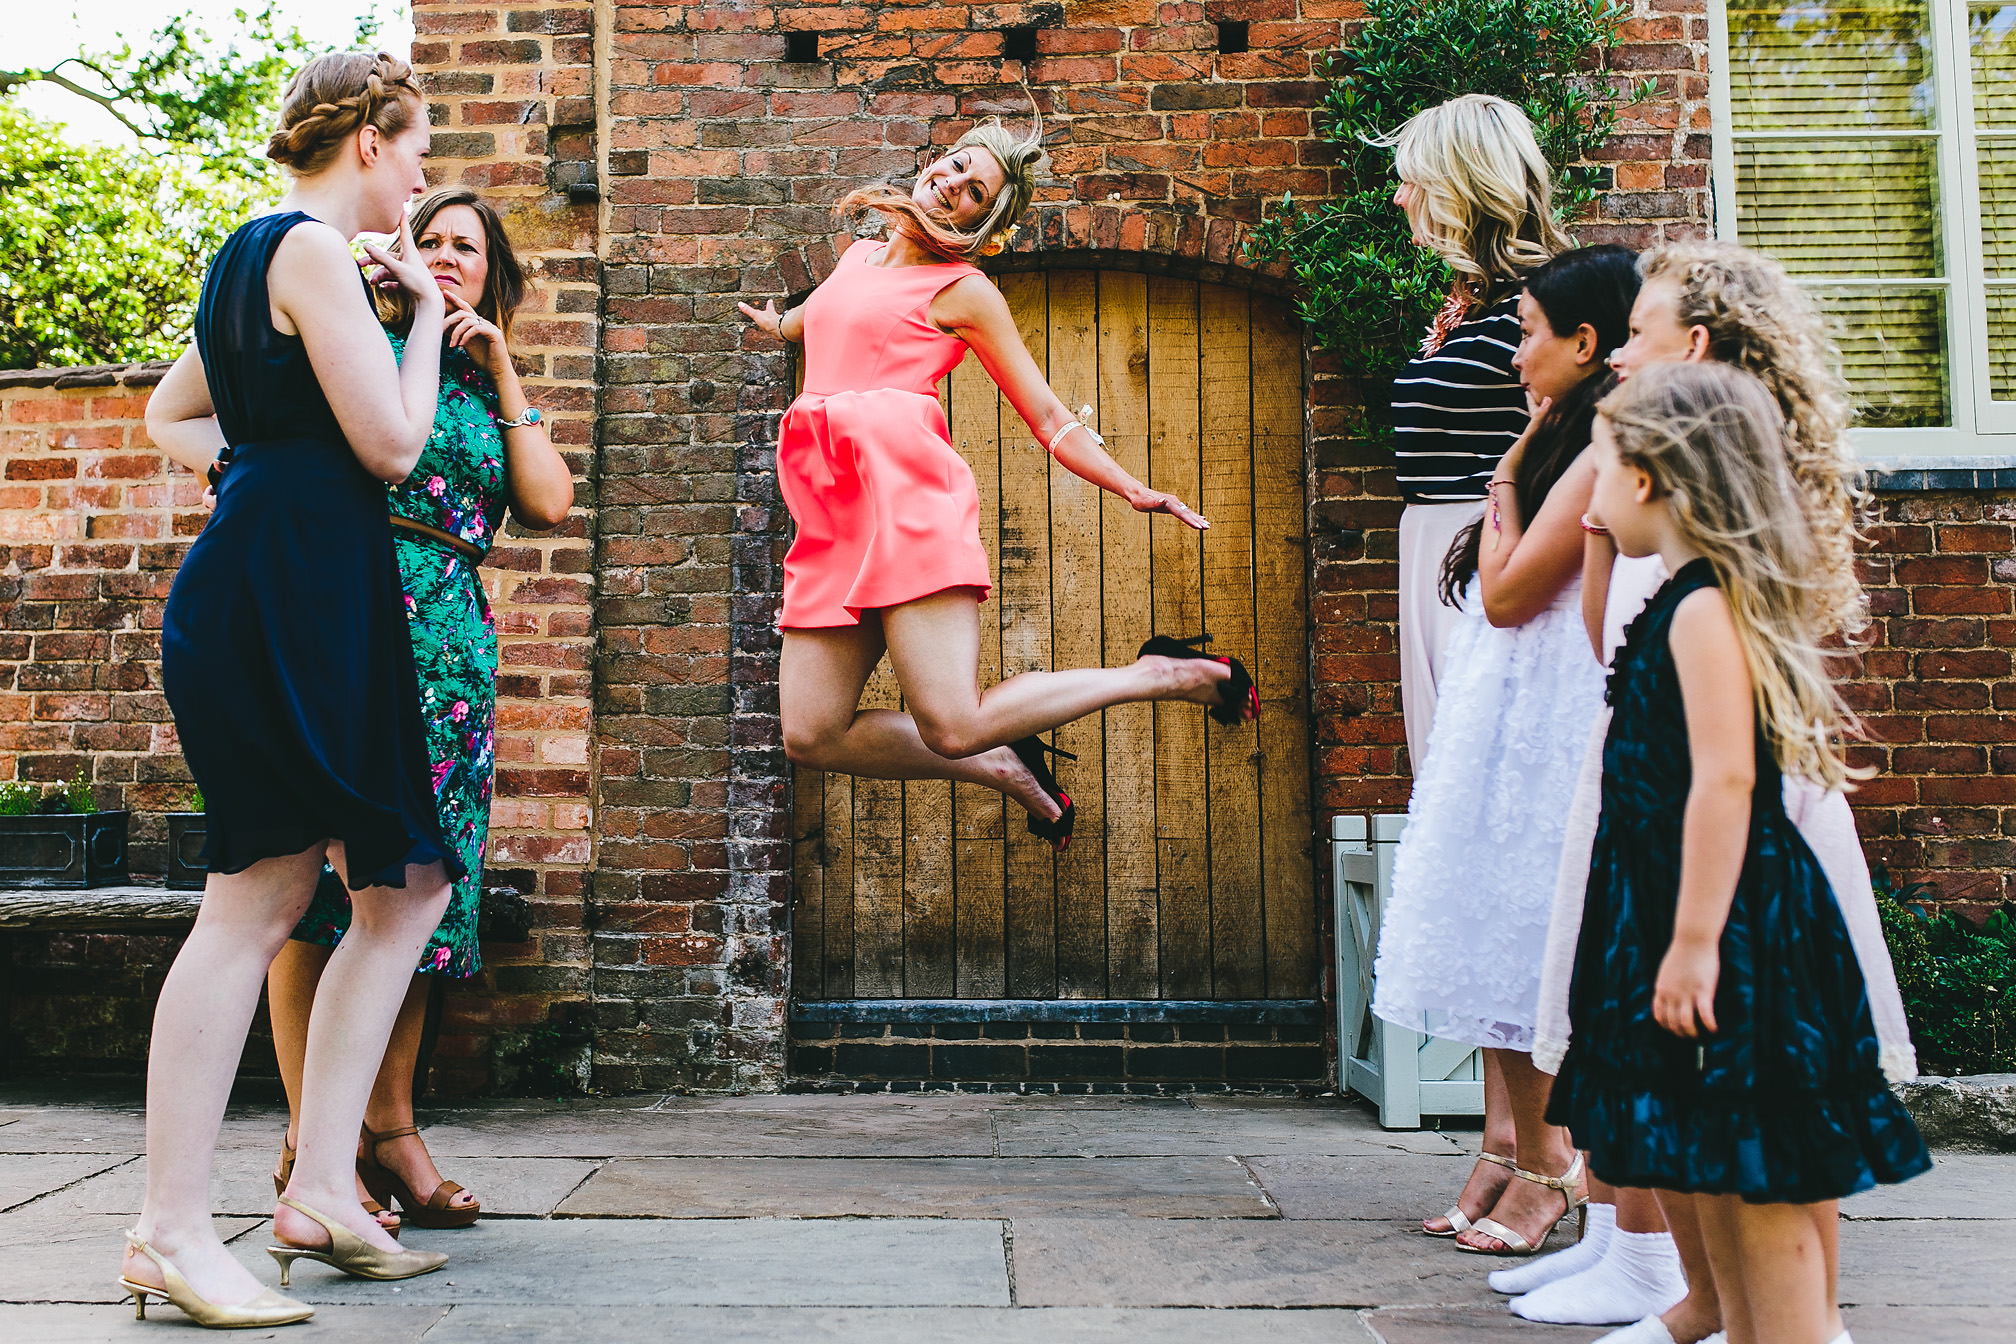 Wedding guest jumping